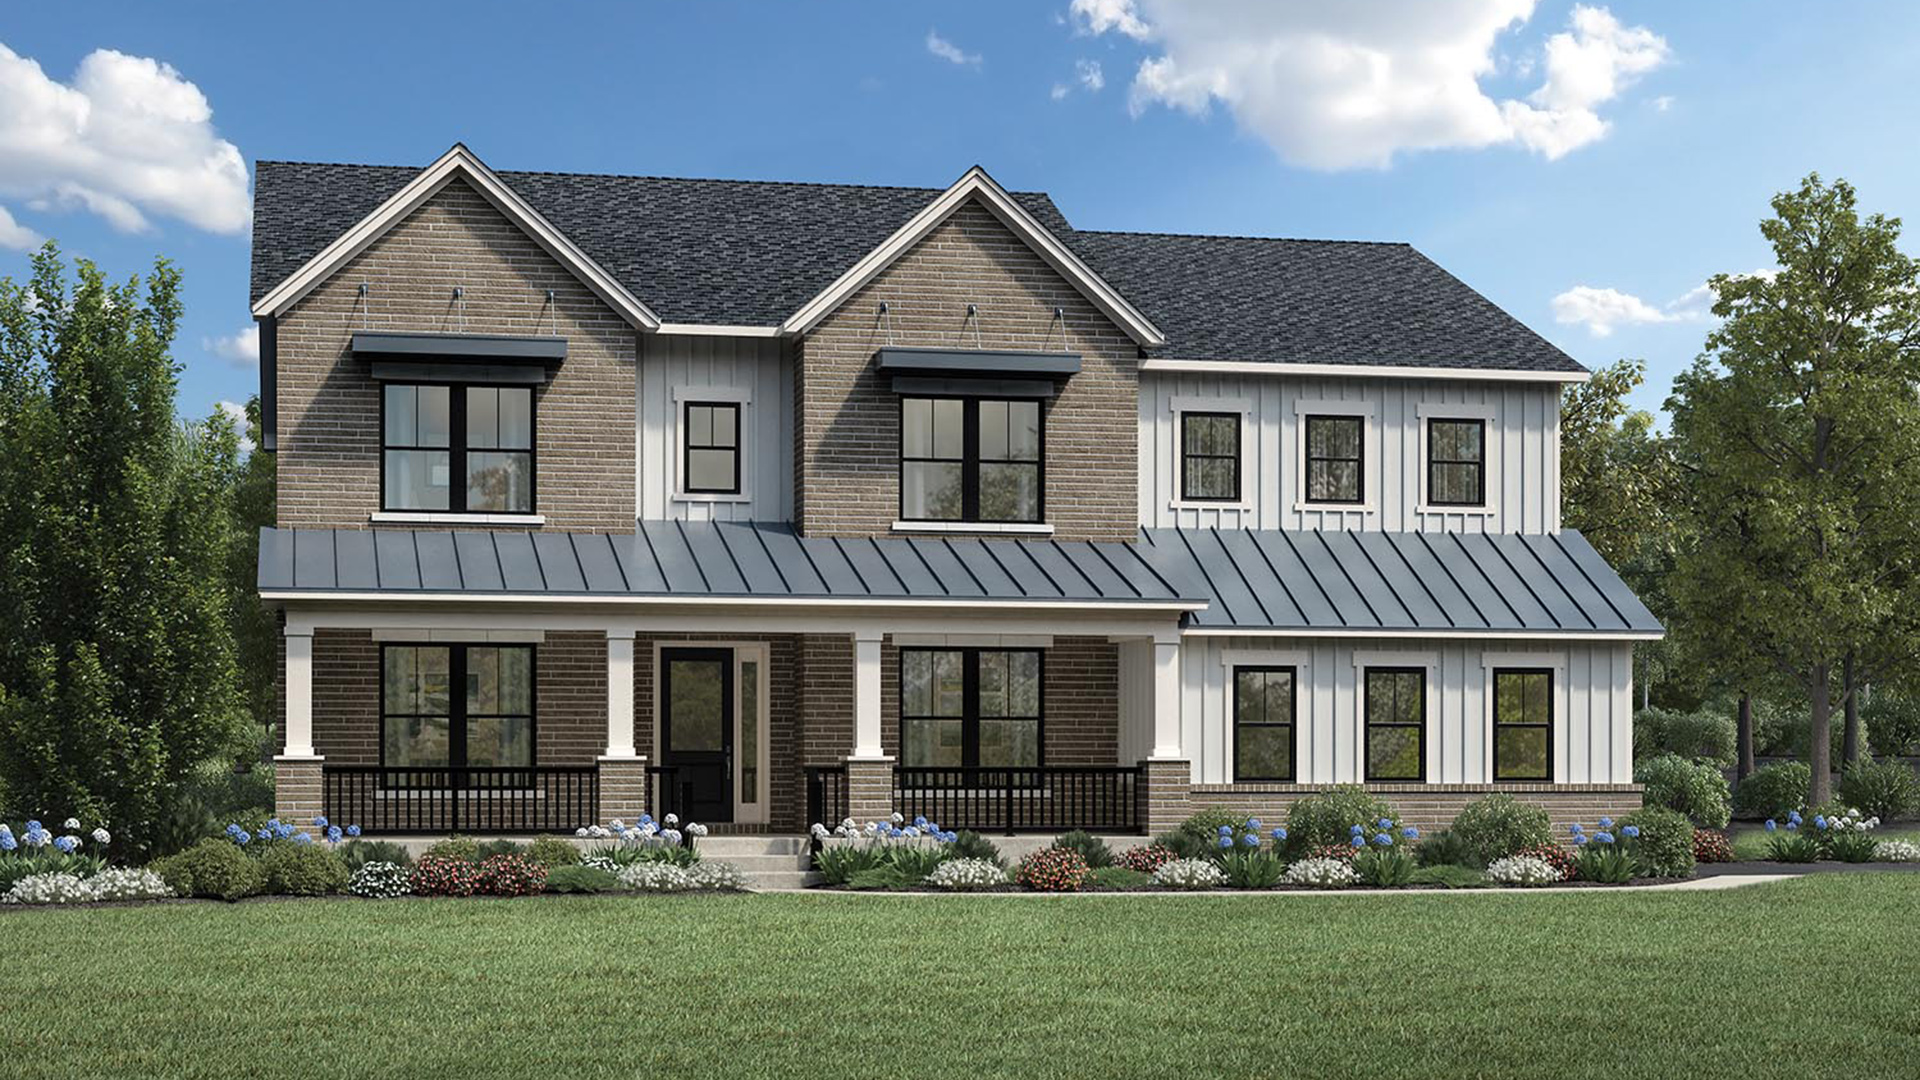 The Ridings at North Branch | The Rosslyn Home Design